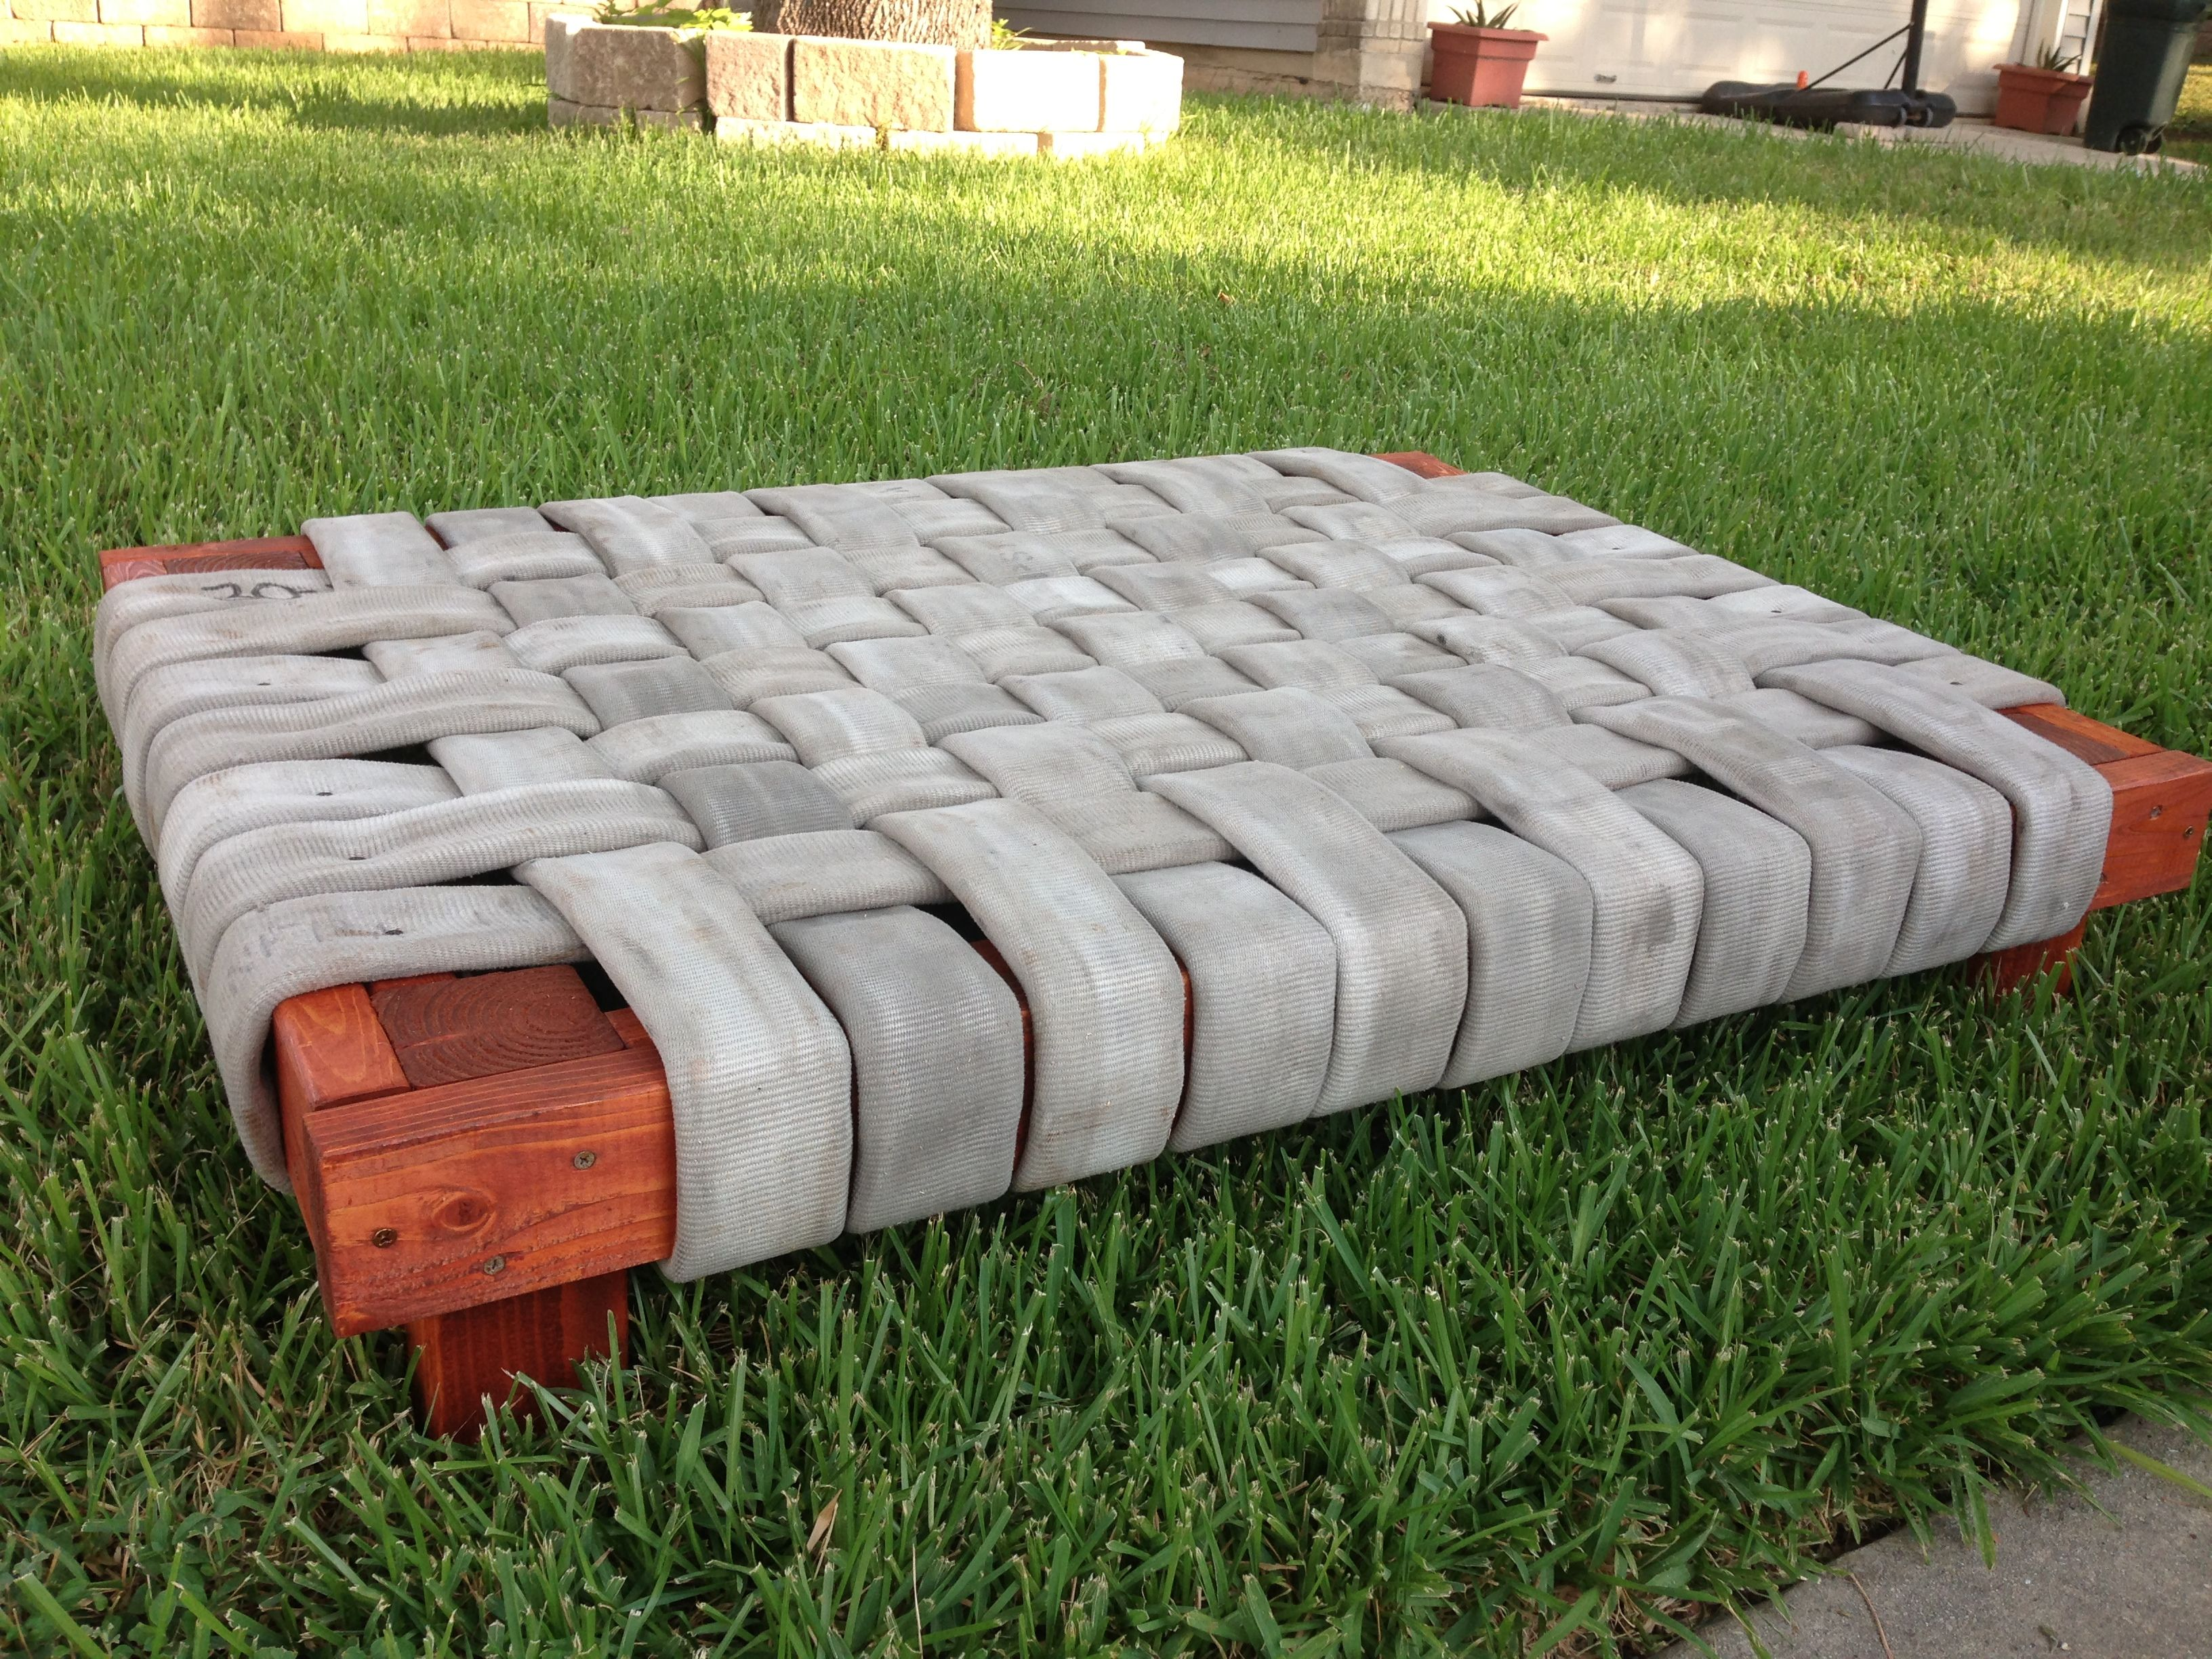 Fireman's Dog Bed Do It Yourself Home Projects from Ana